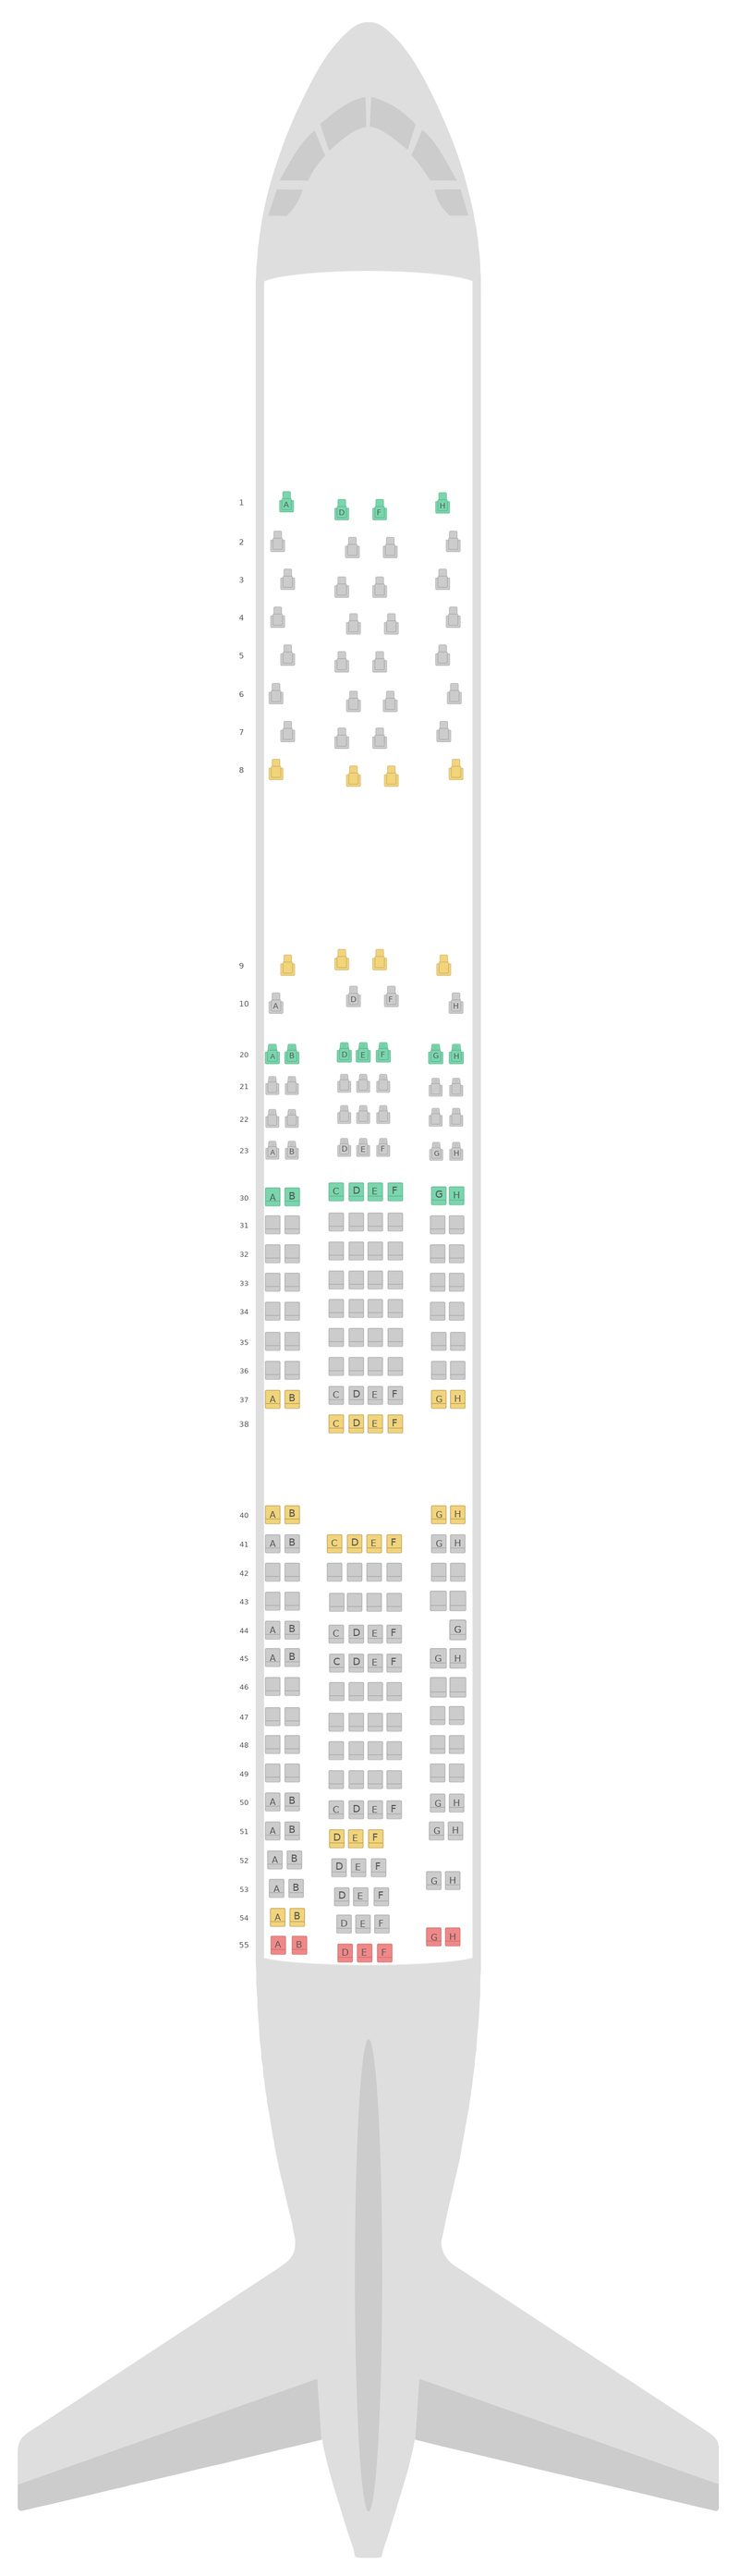 Seat Map Scandinavian Airlines (SAS) Airbus A340-300 (343)